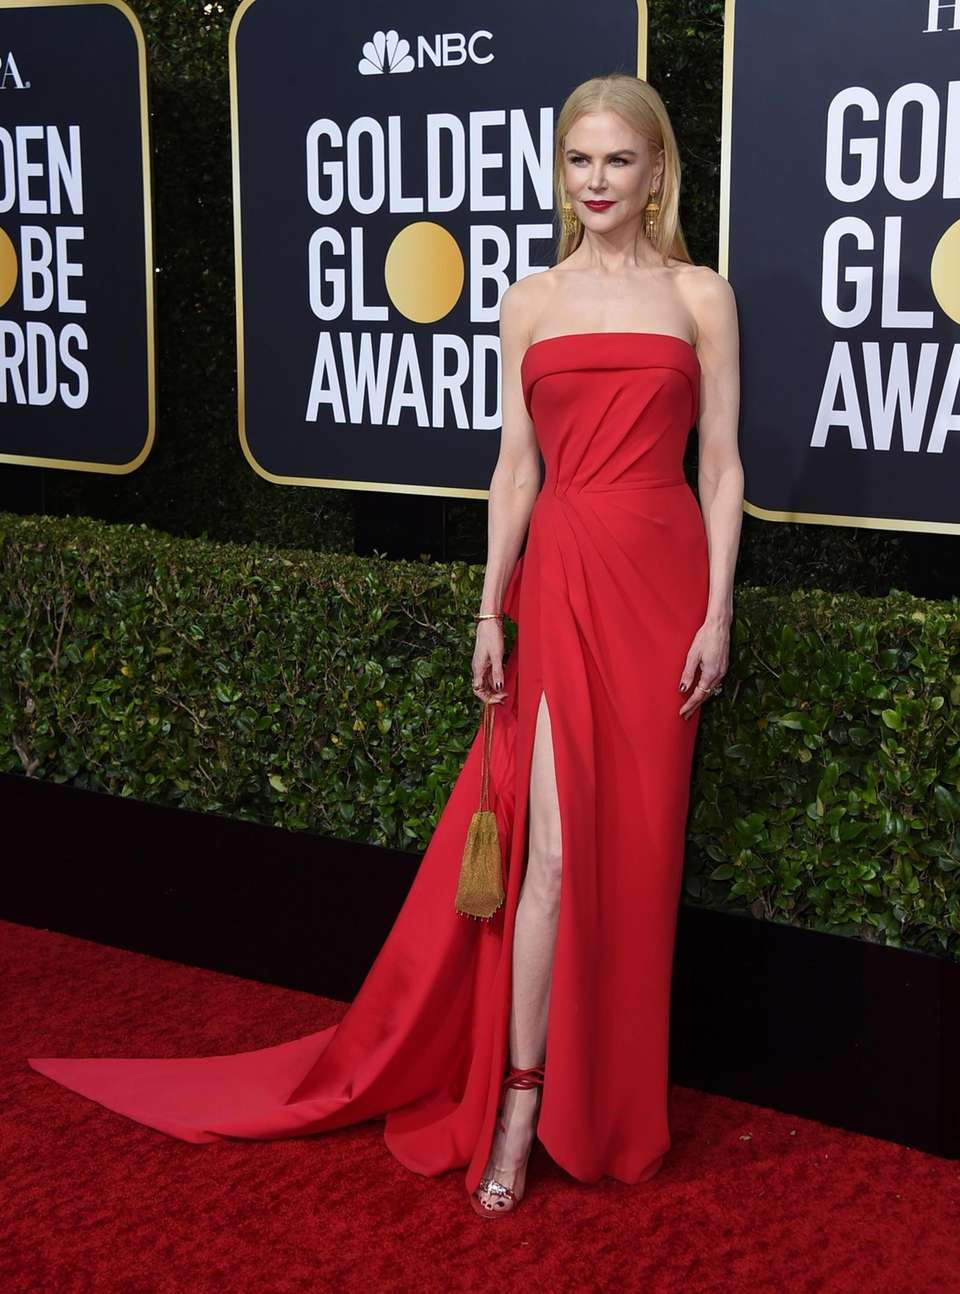 Nicole Kidman arrives at the 77th annual Golden